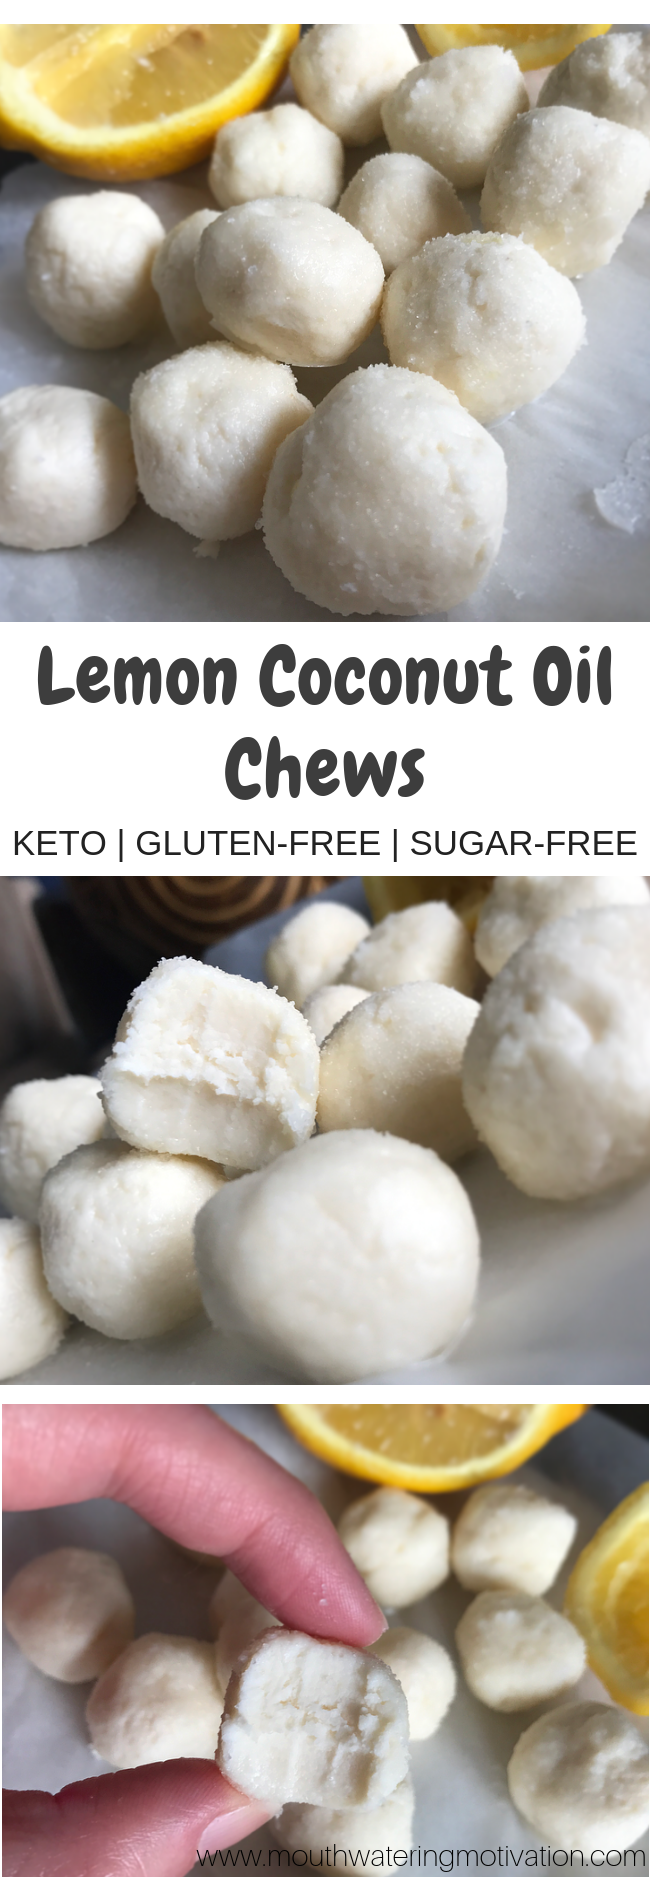 Lemon Coconut Oil Chews